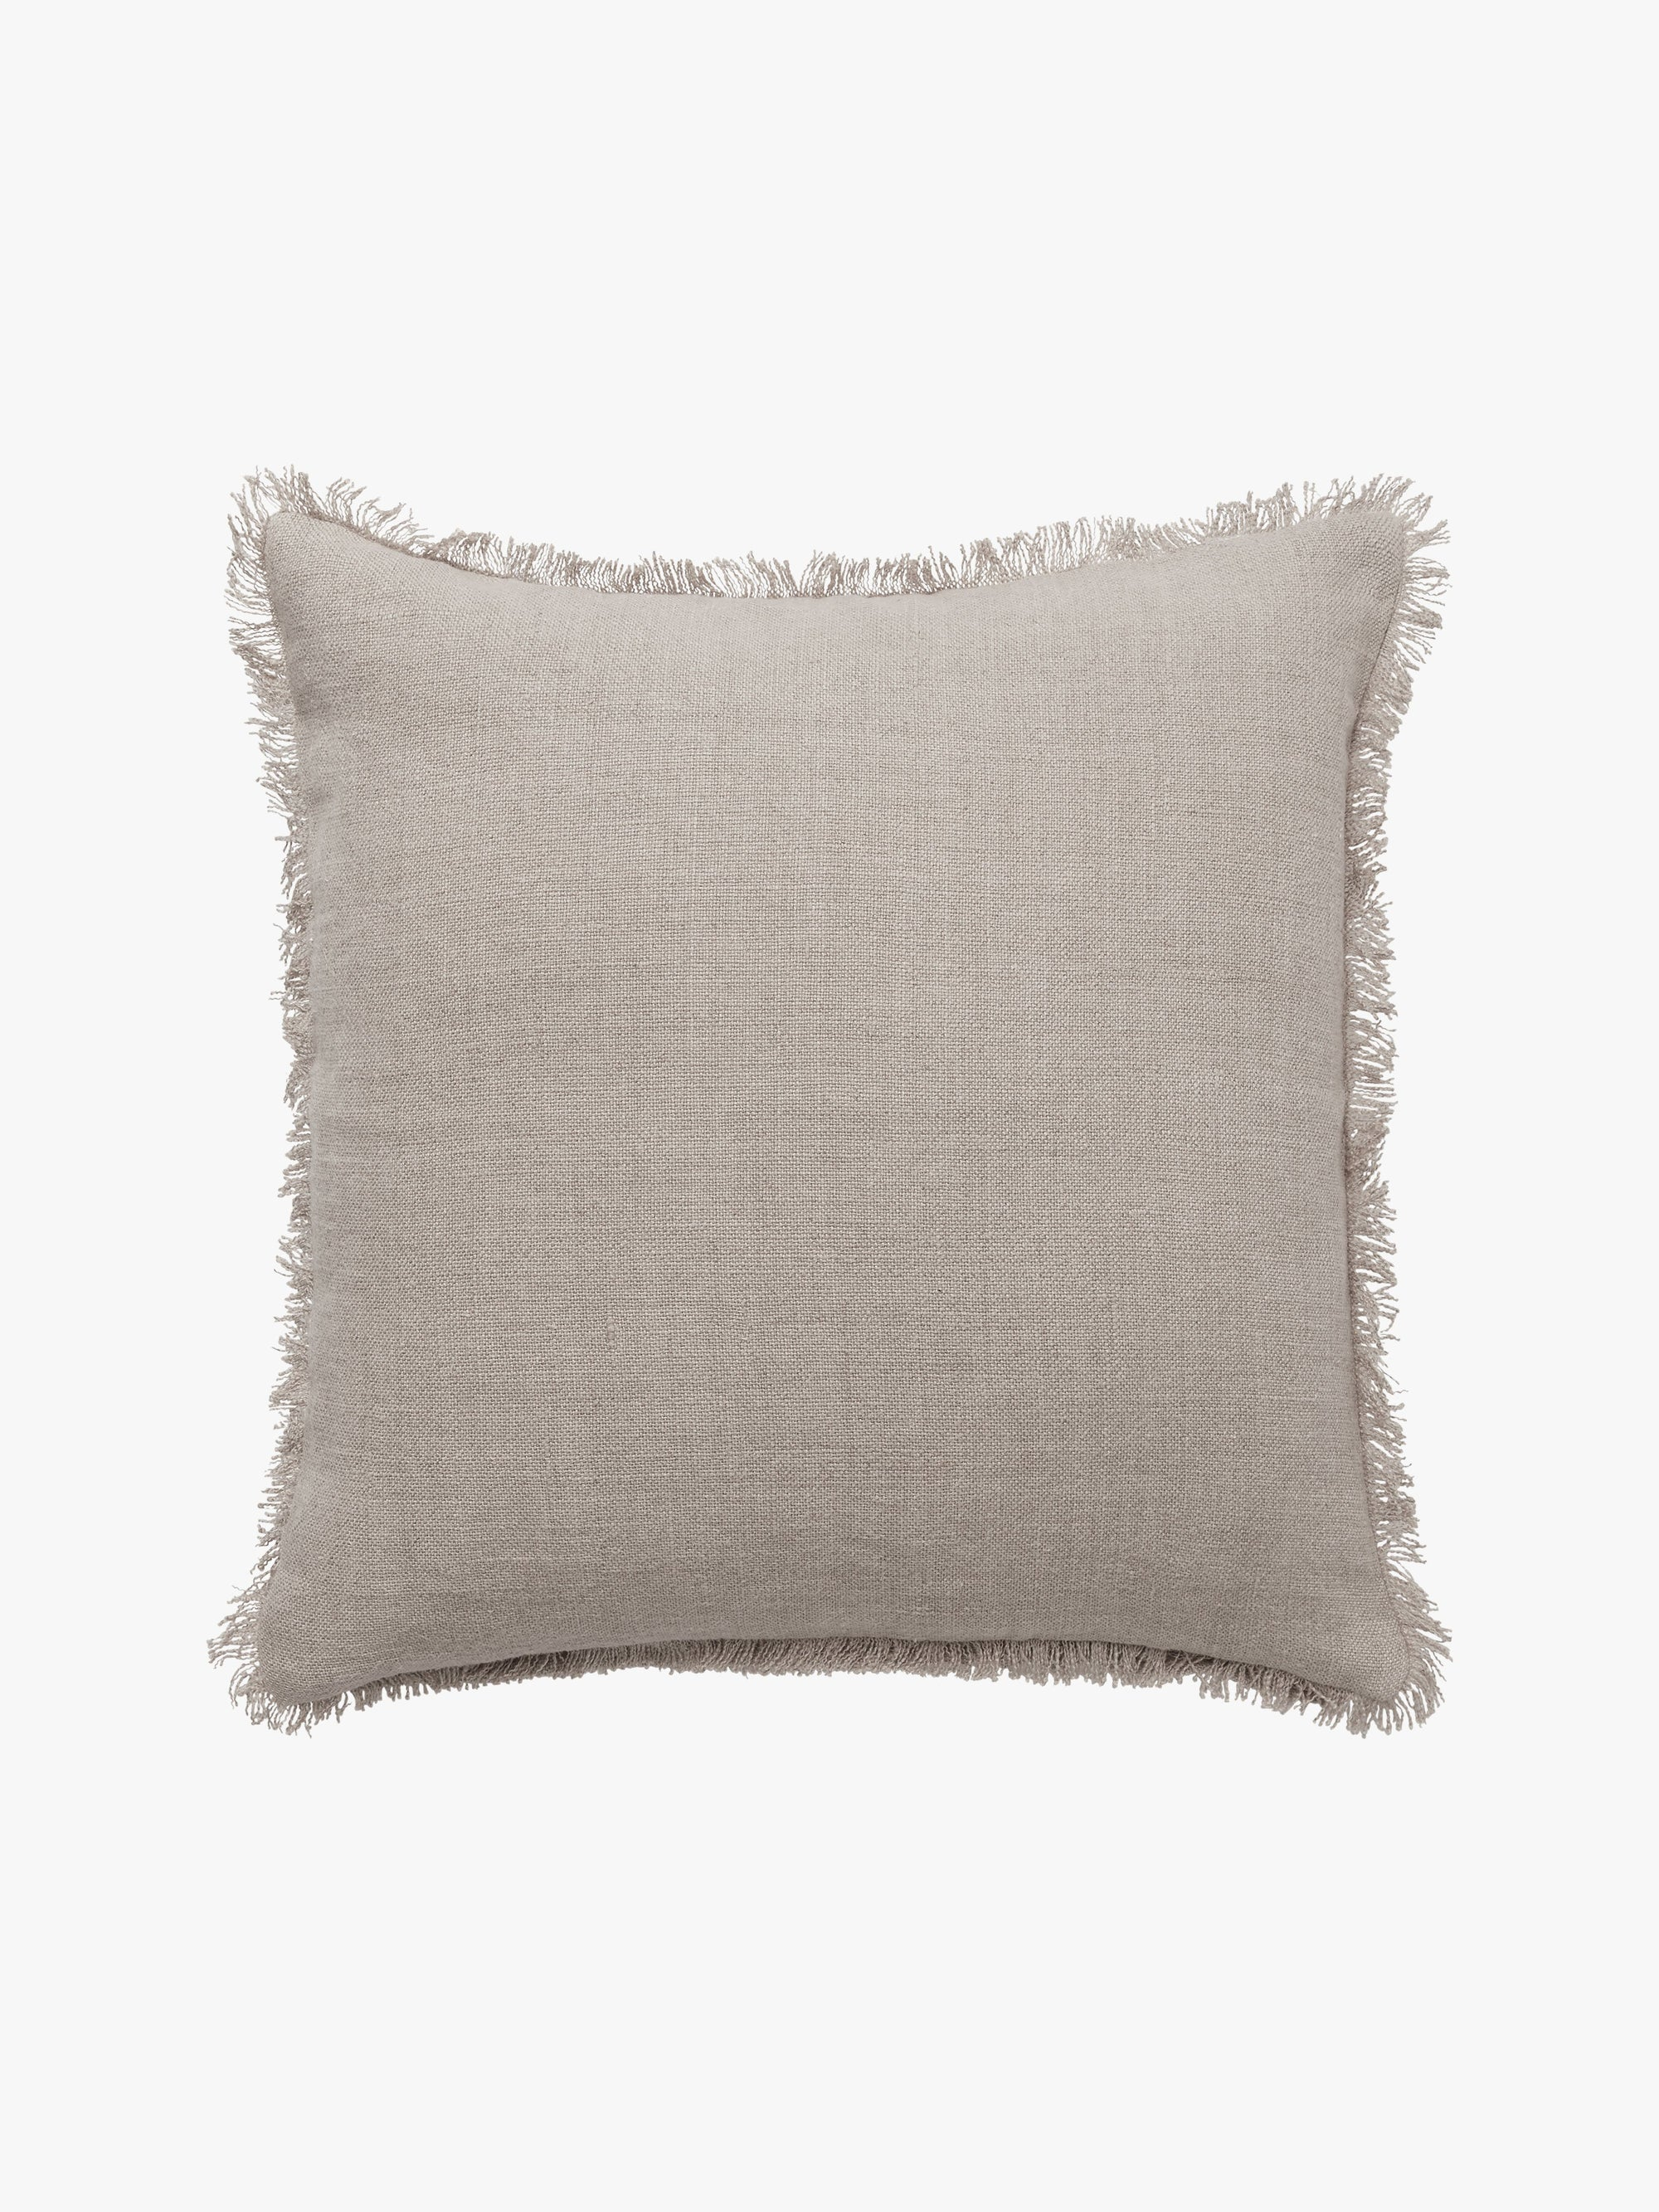 Burton Oatmeal Cushions Cushion L&M Home Burton Cushion